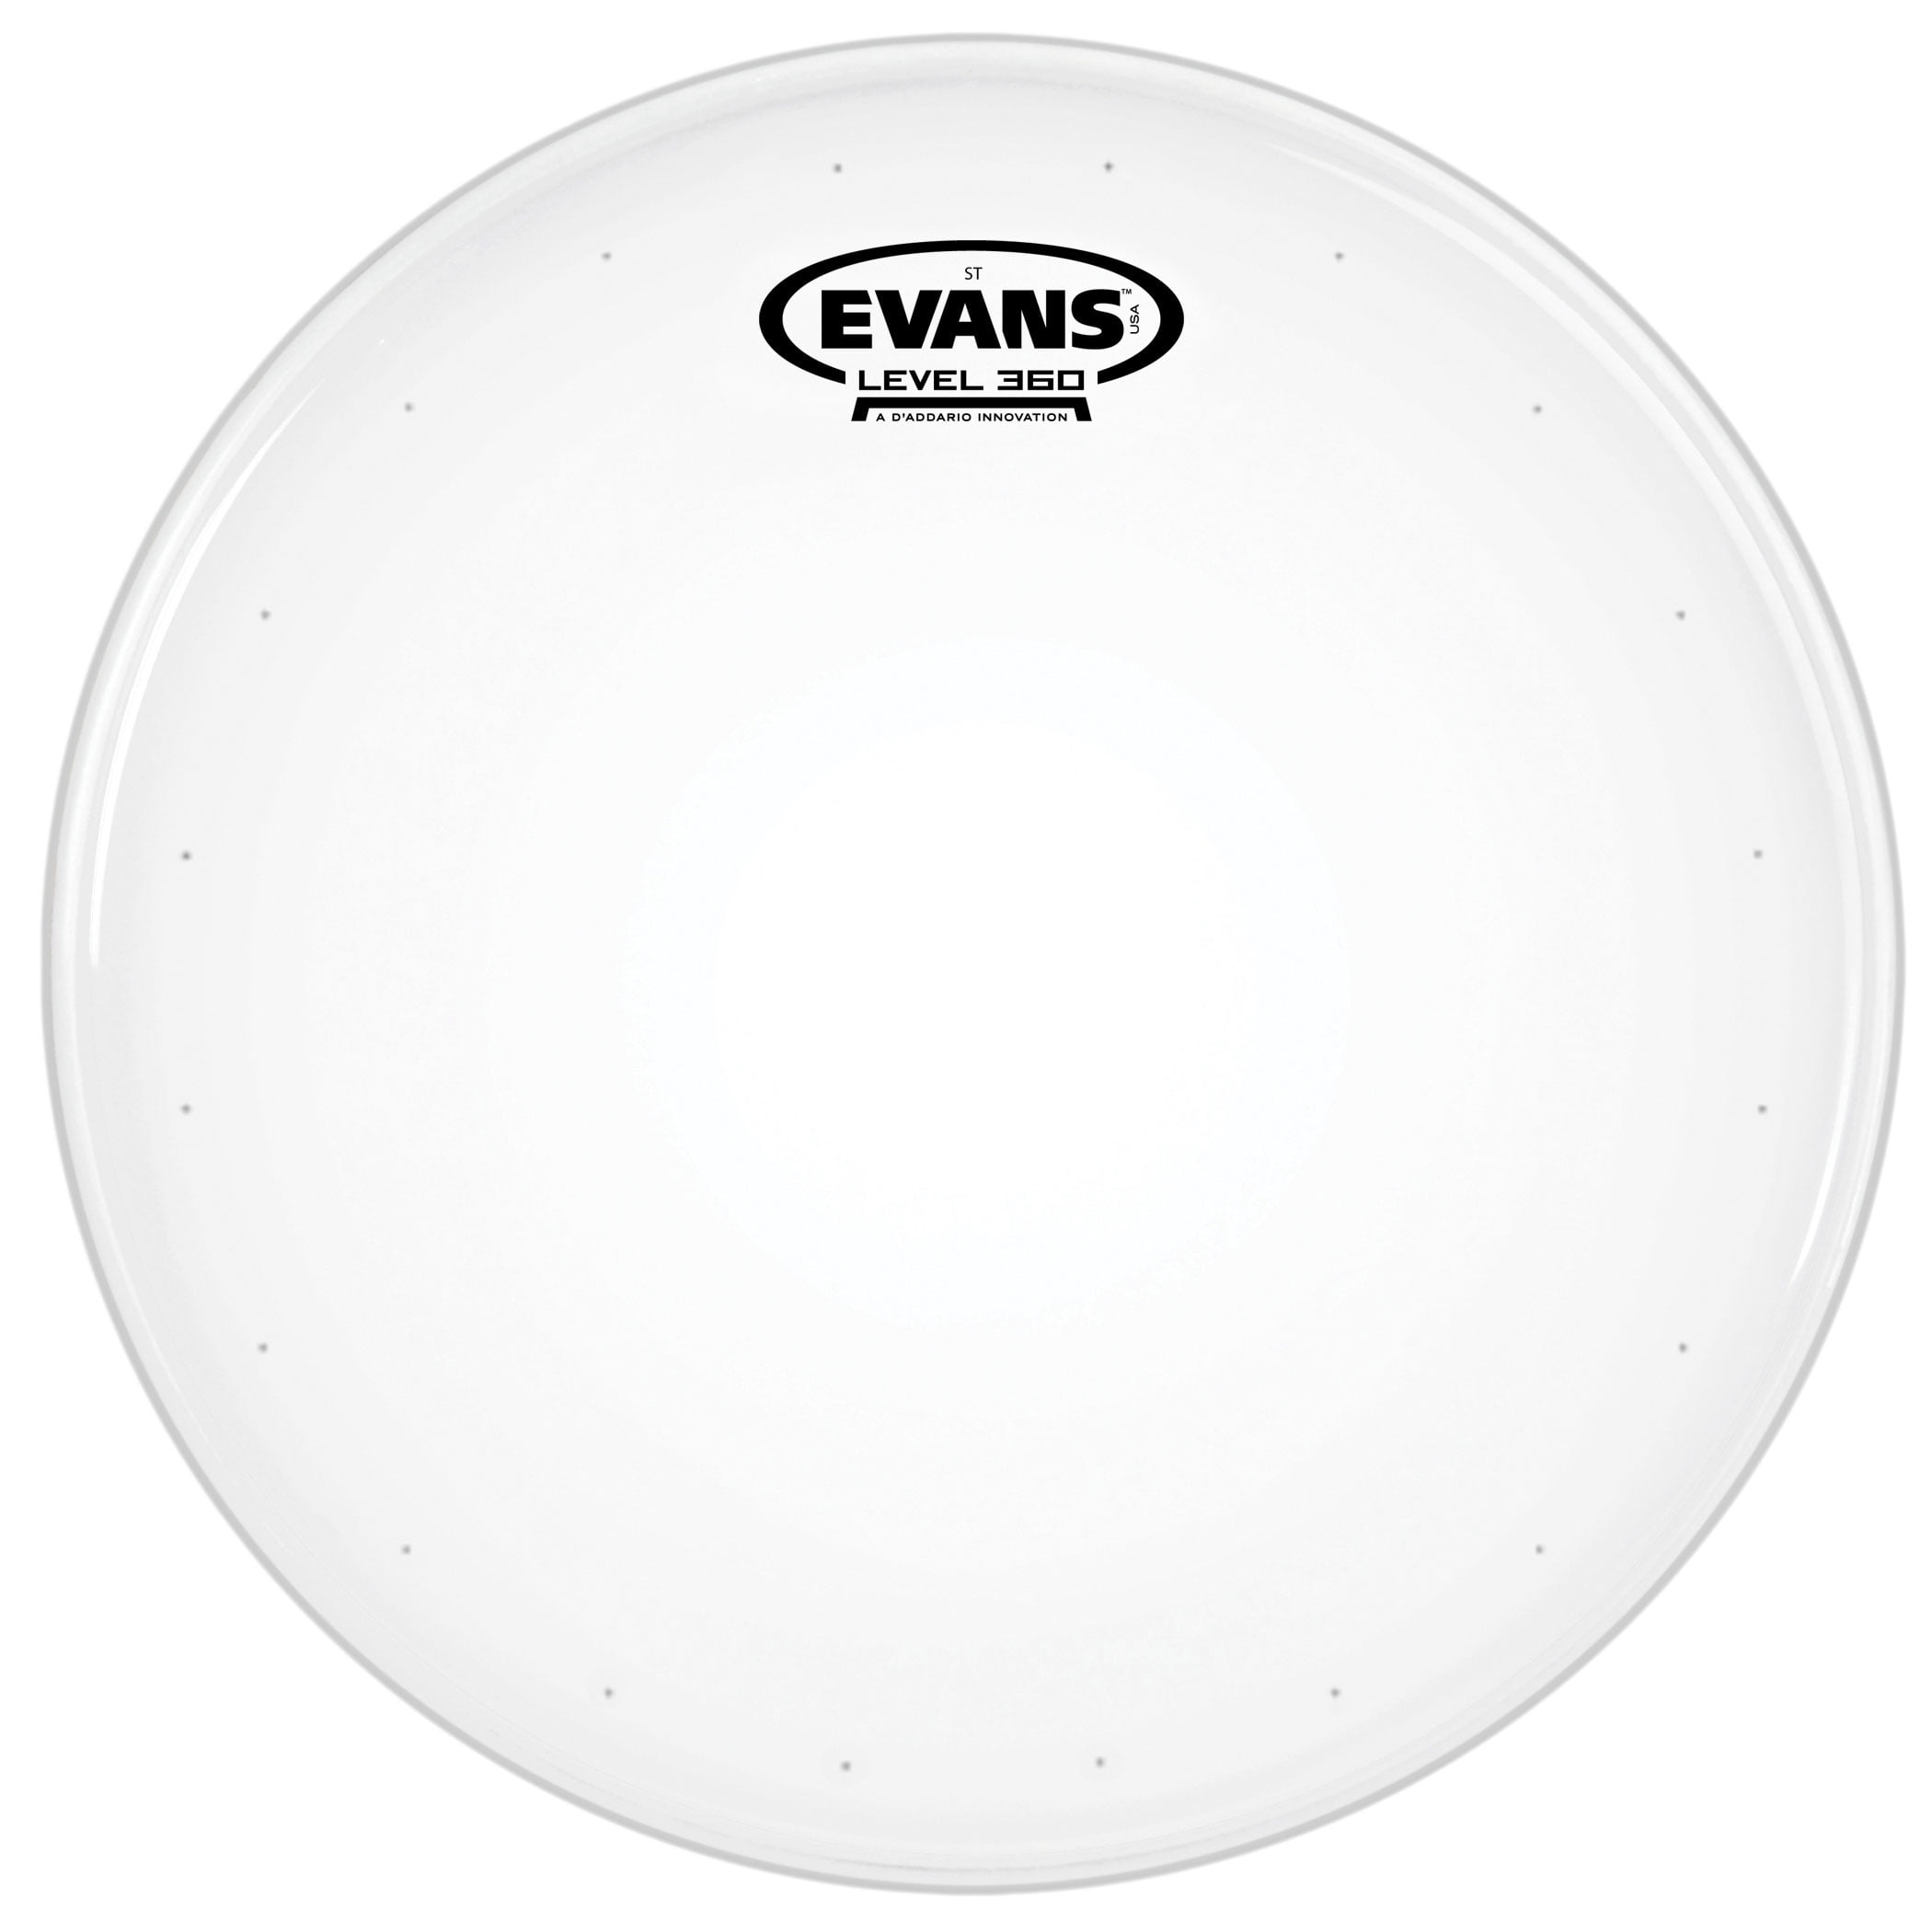 "Evans 14"" Super Tough Snare Drum Head by Evans"